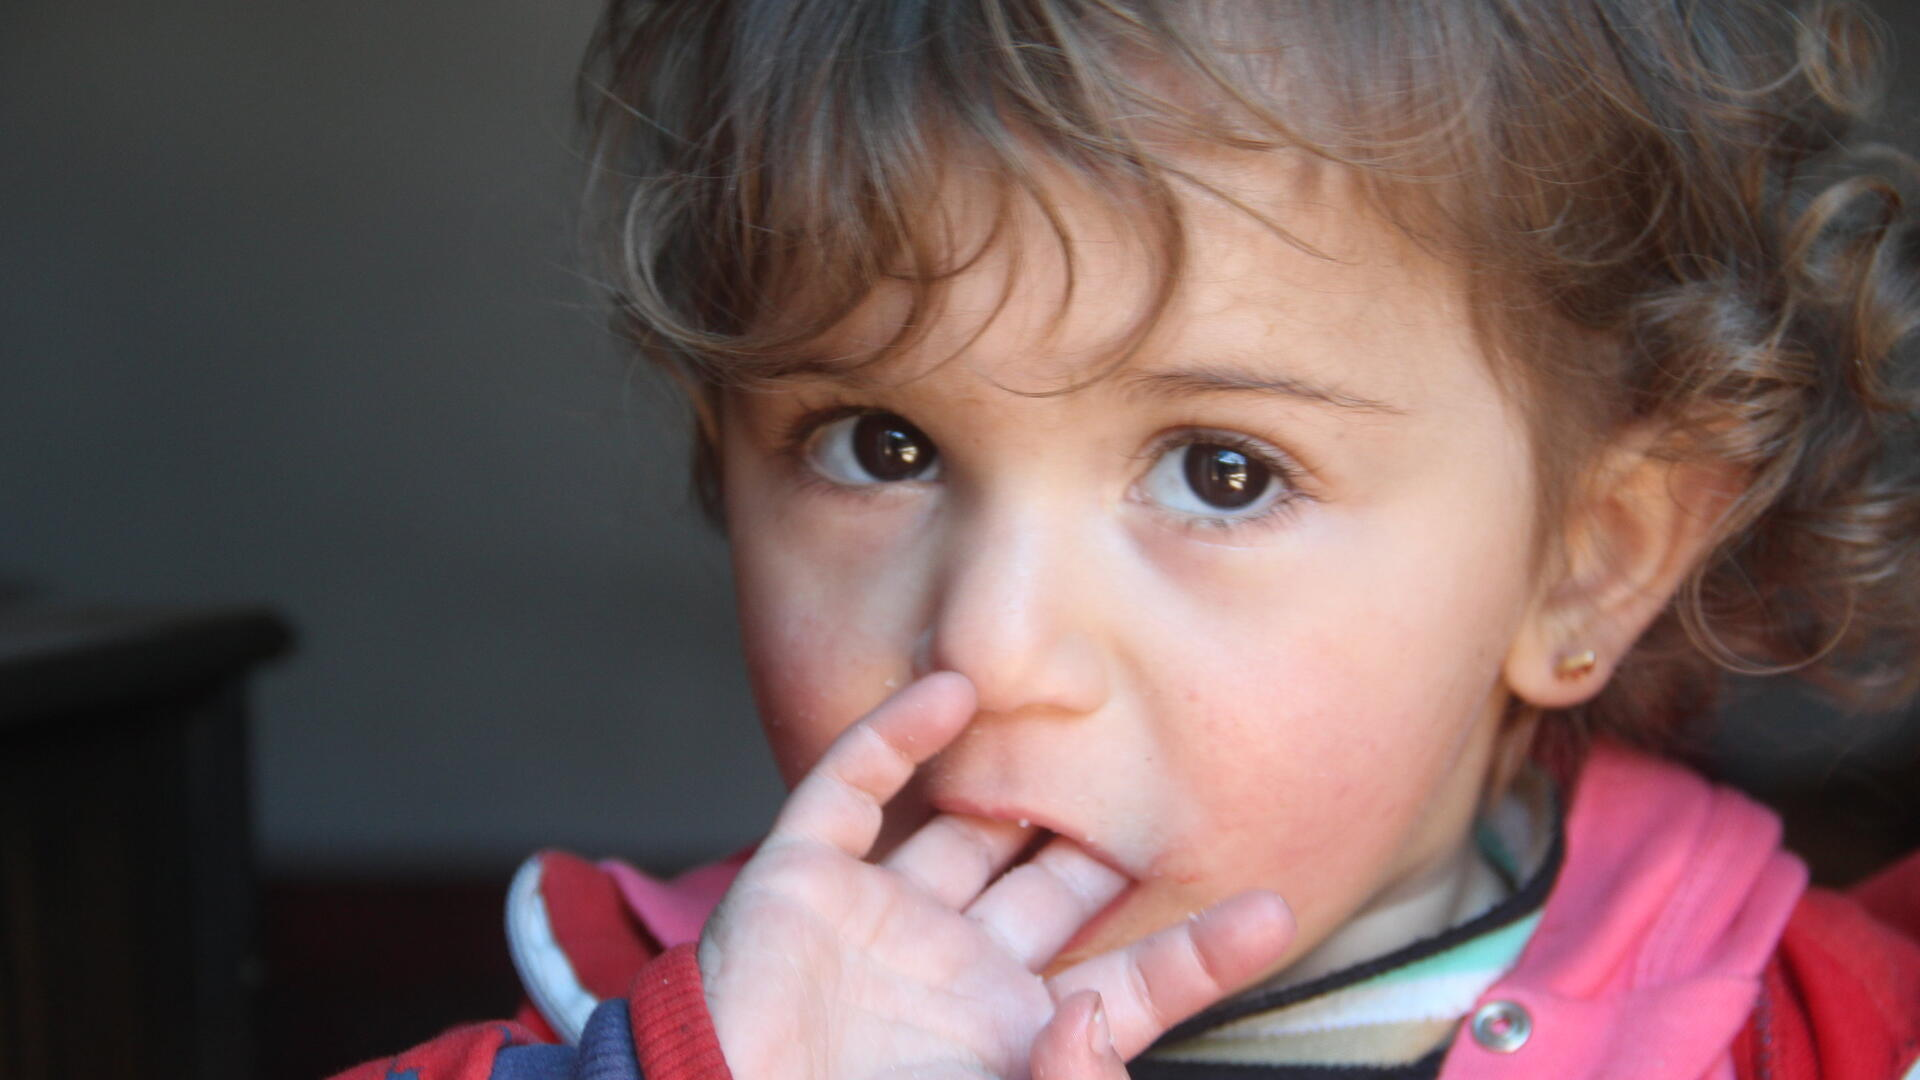 A Syrian girl in Dana, Idlib